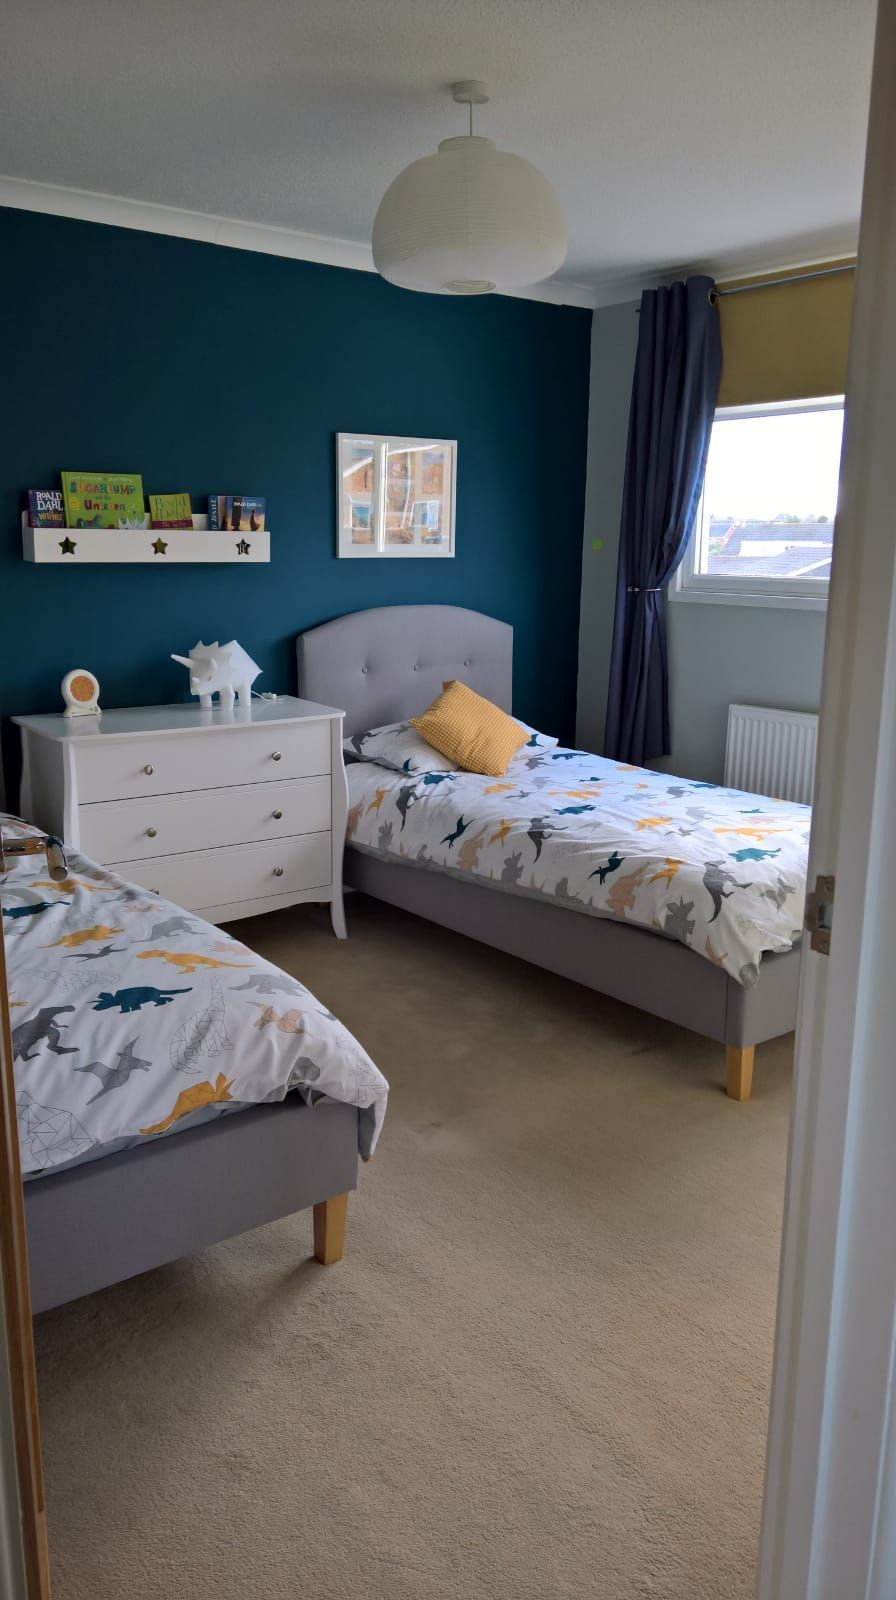 25+ Marvelous Boys Bedroom Ideas That Will Inspire You – HARP POST